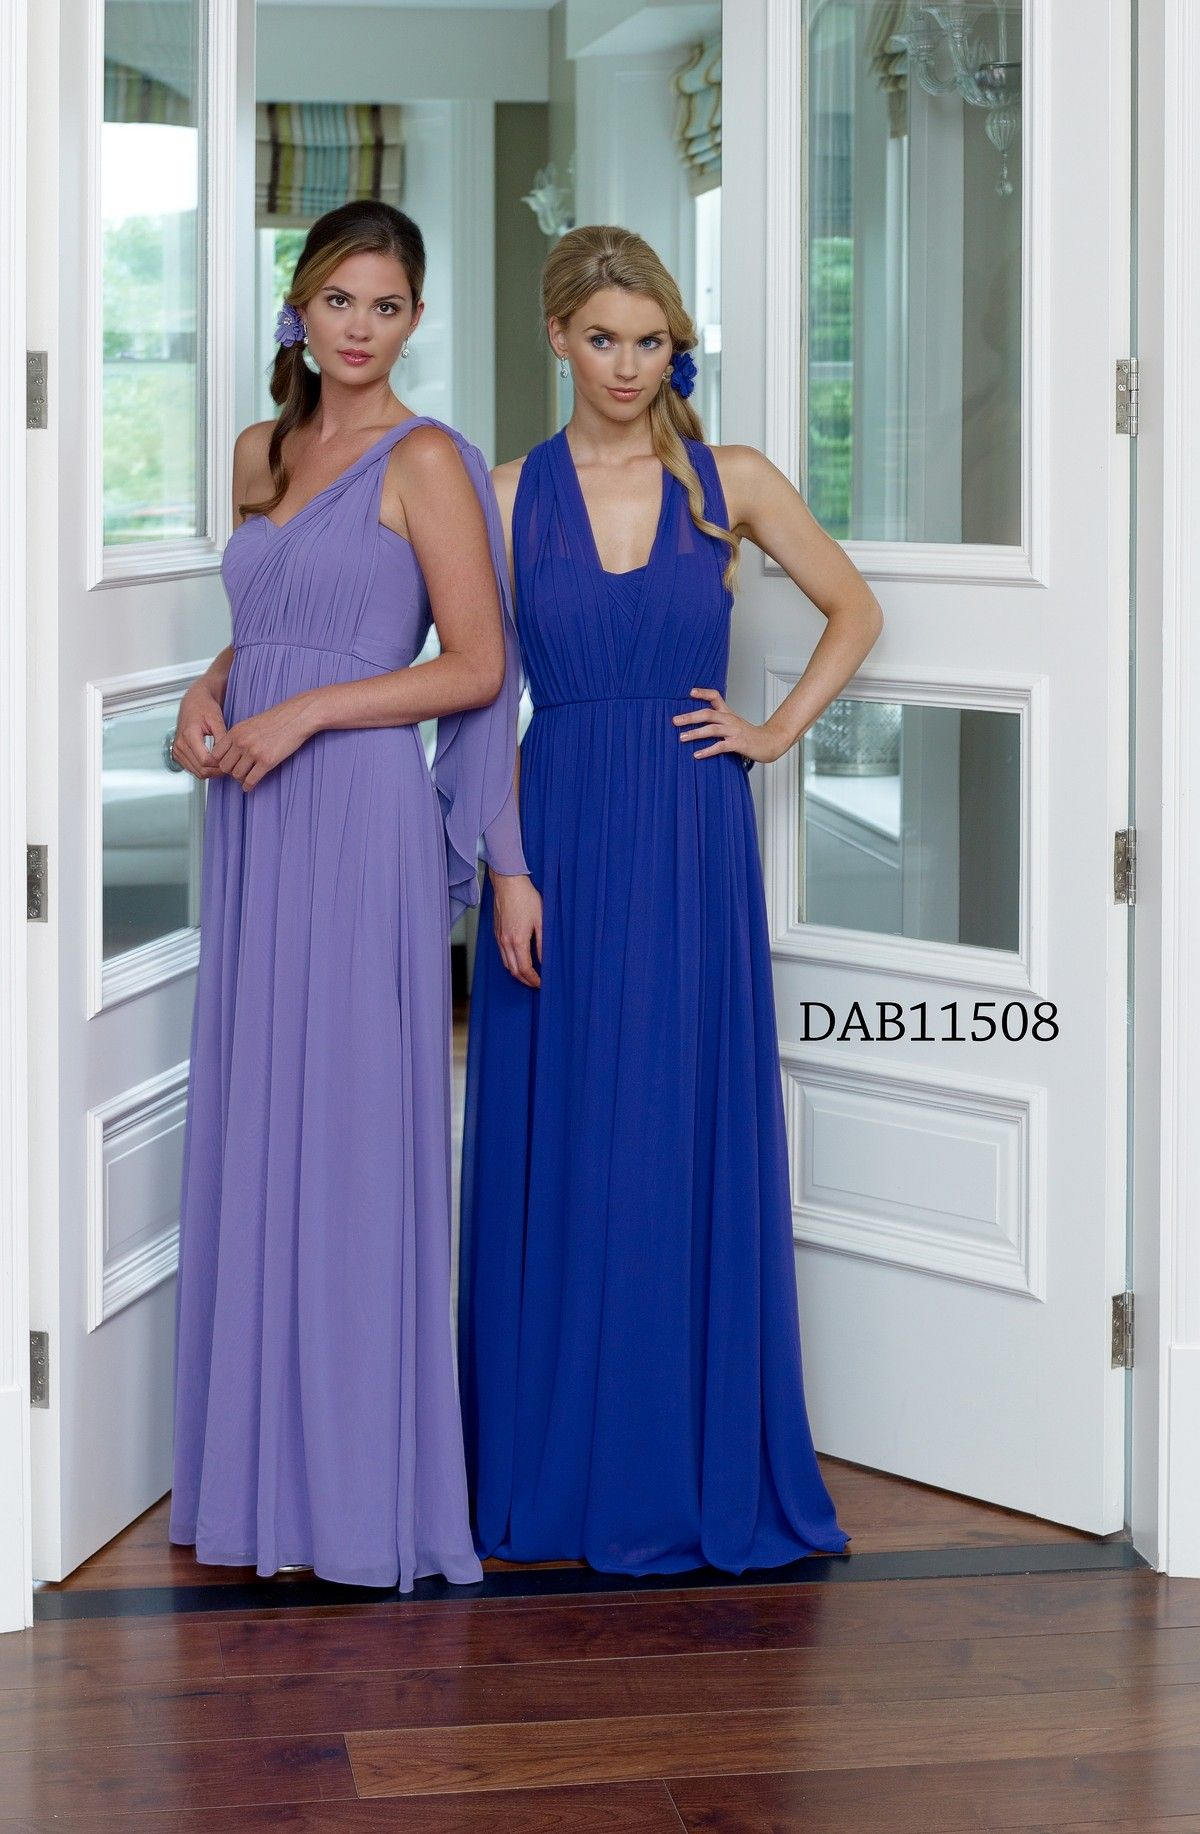 DAB11508 : D\'Zage Bridesmaid Collection | Veromia | Our Occasionwear ...